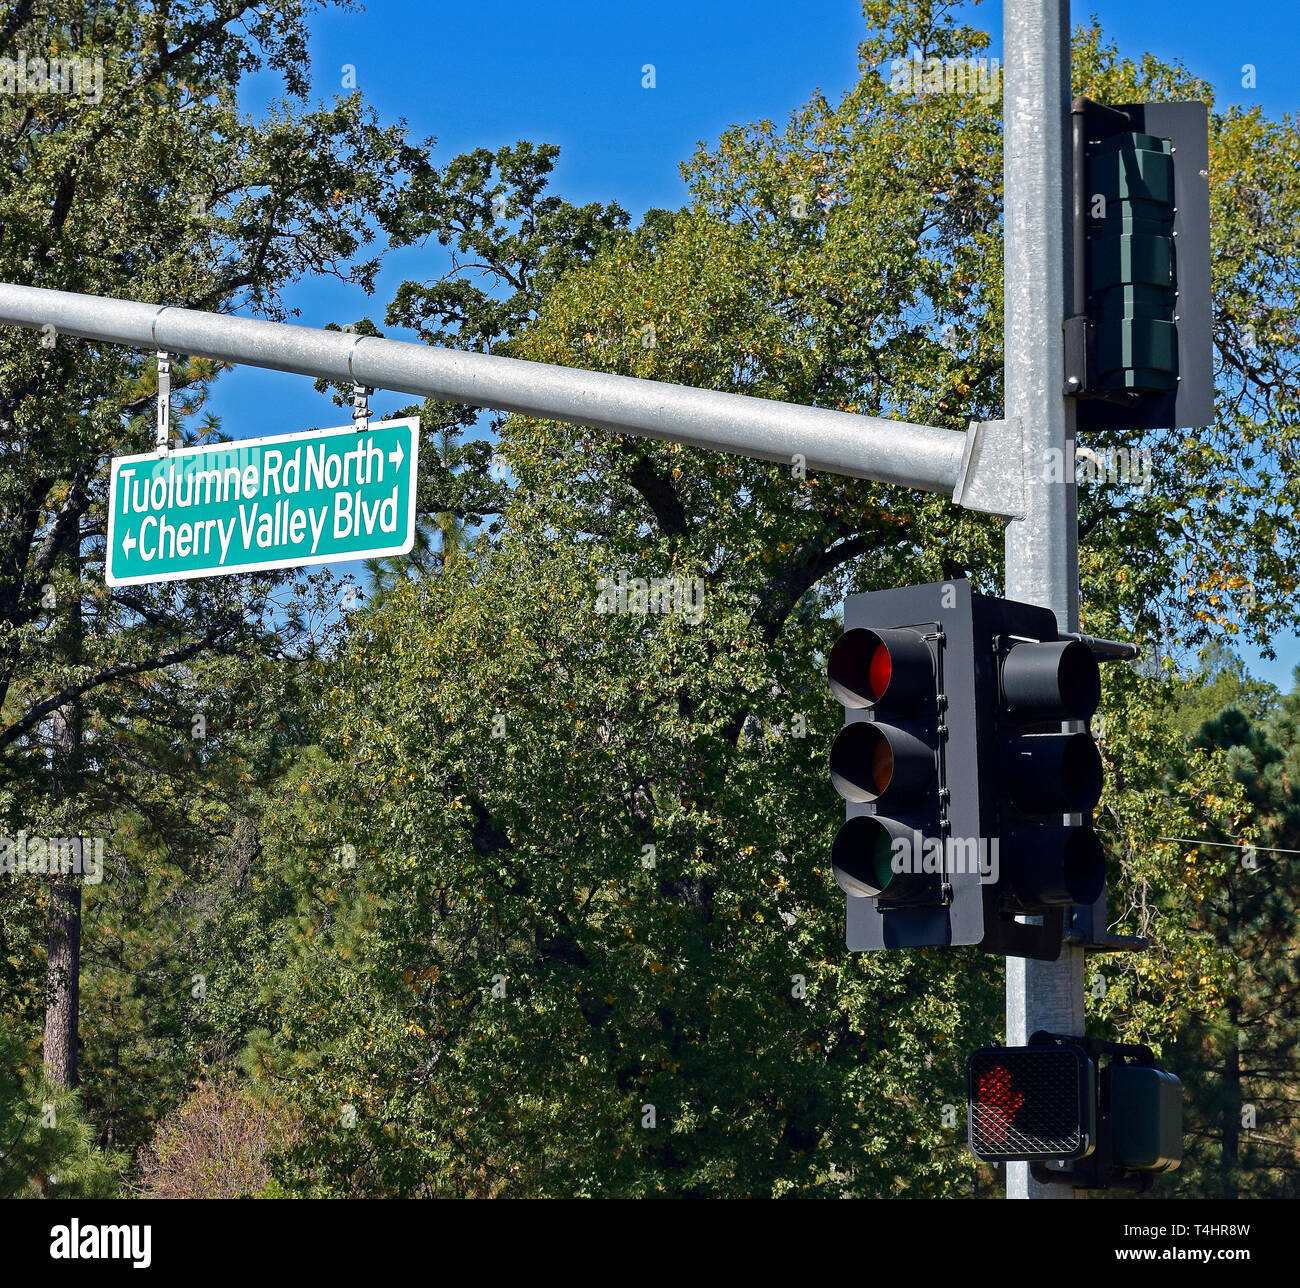 Tuolumne Rd North and Cherry Valley Blvd road signs and traffic light in Jamestown, California - Stock Image